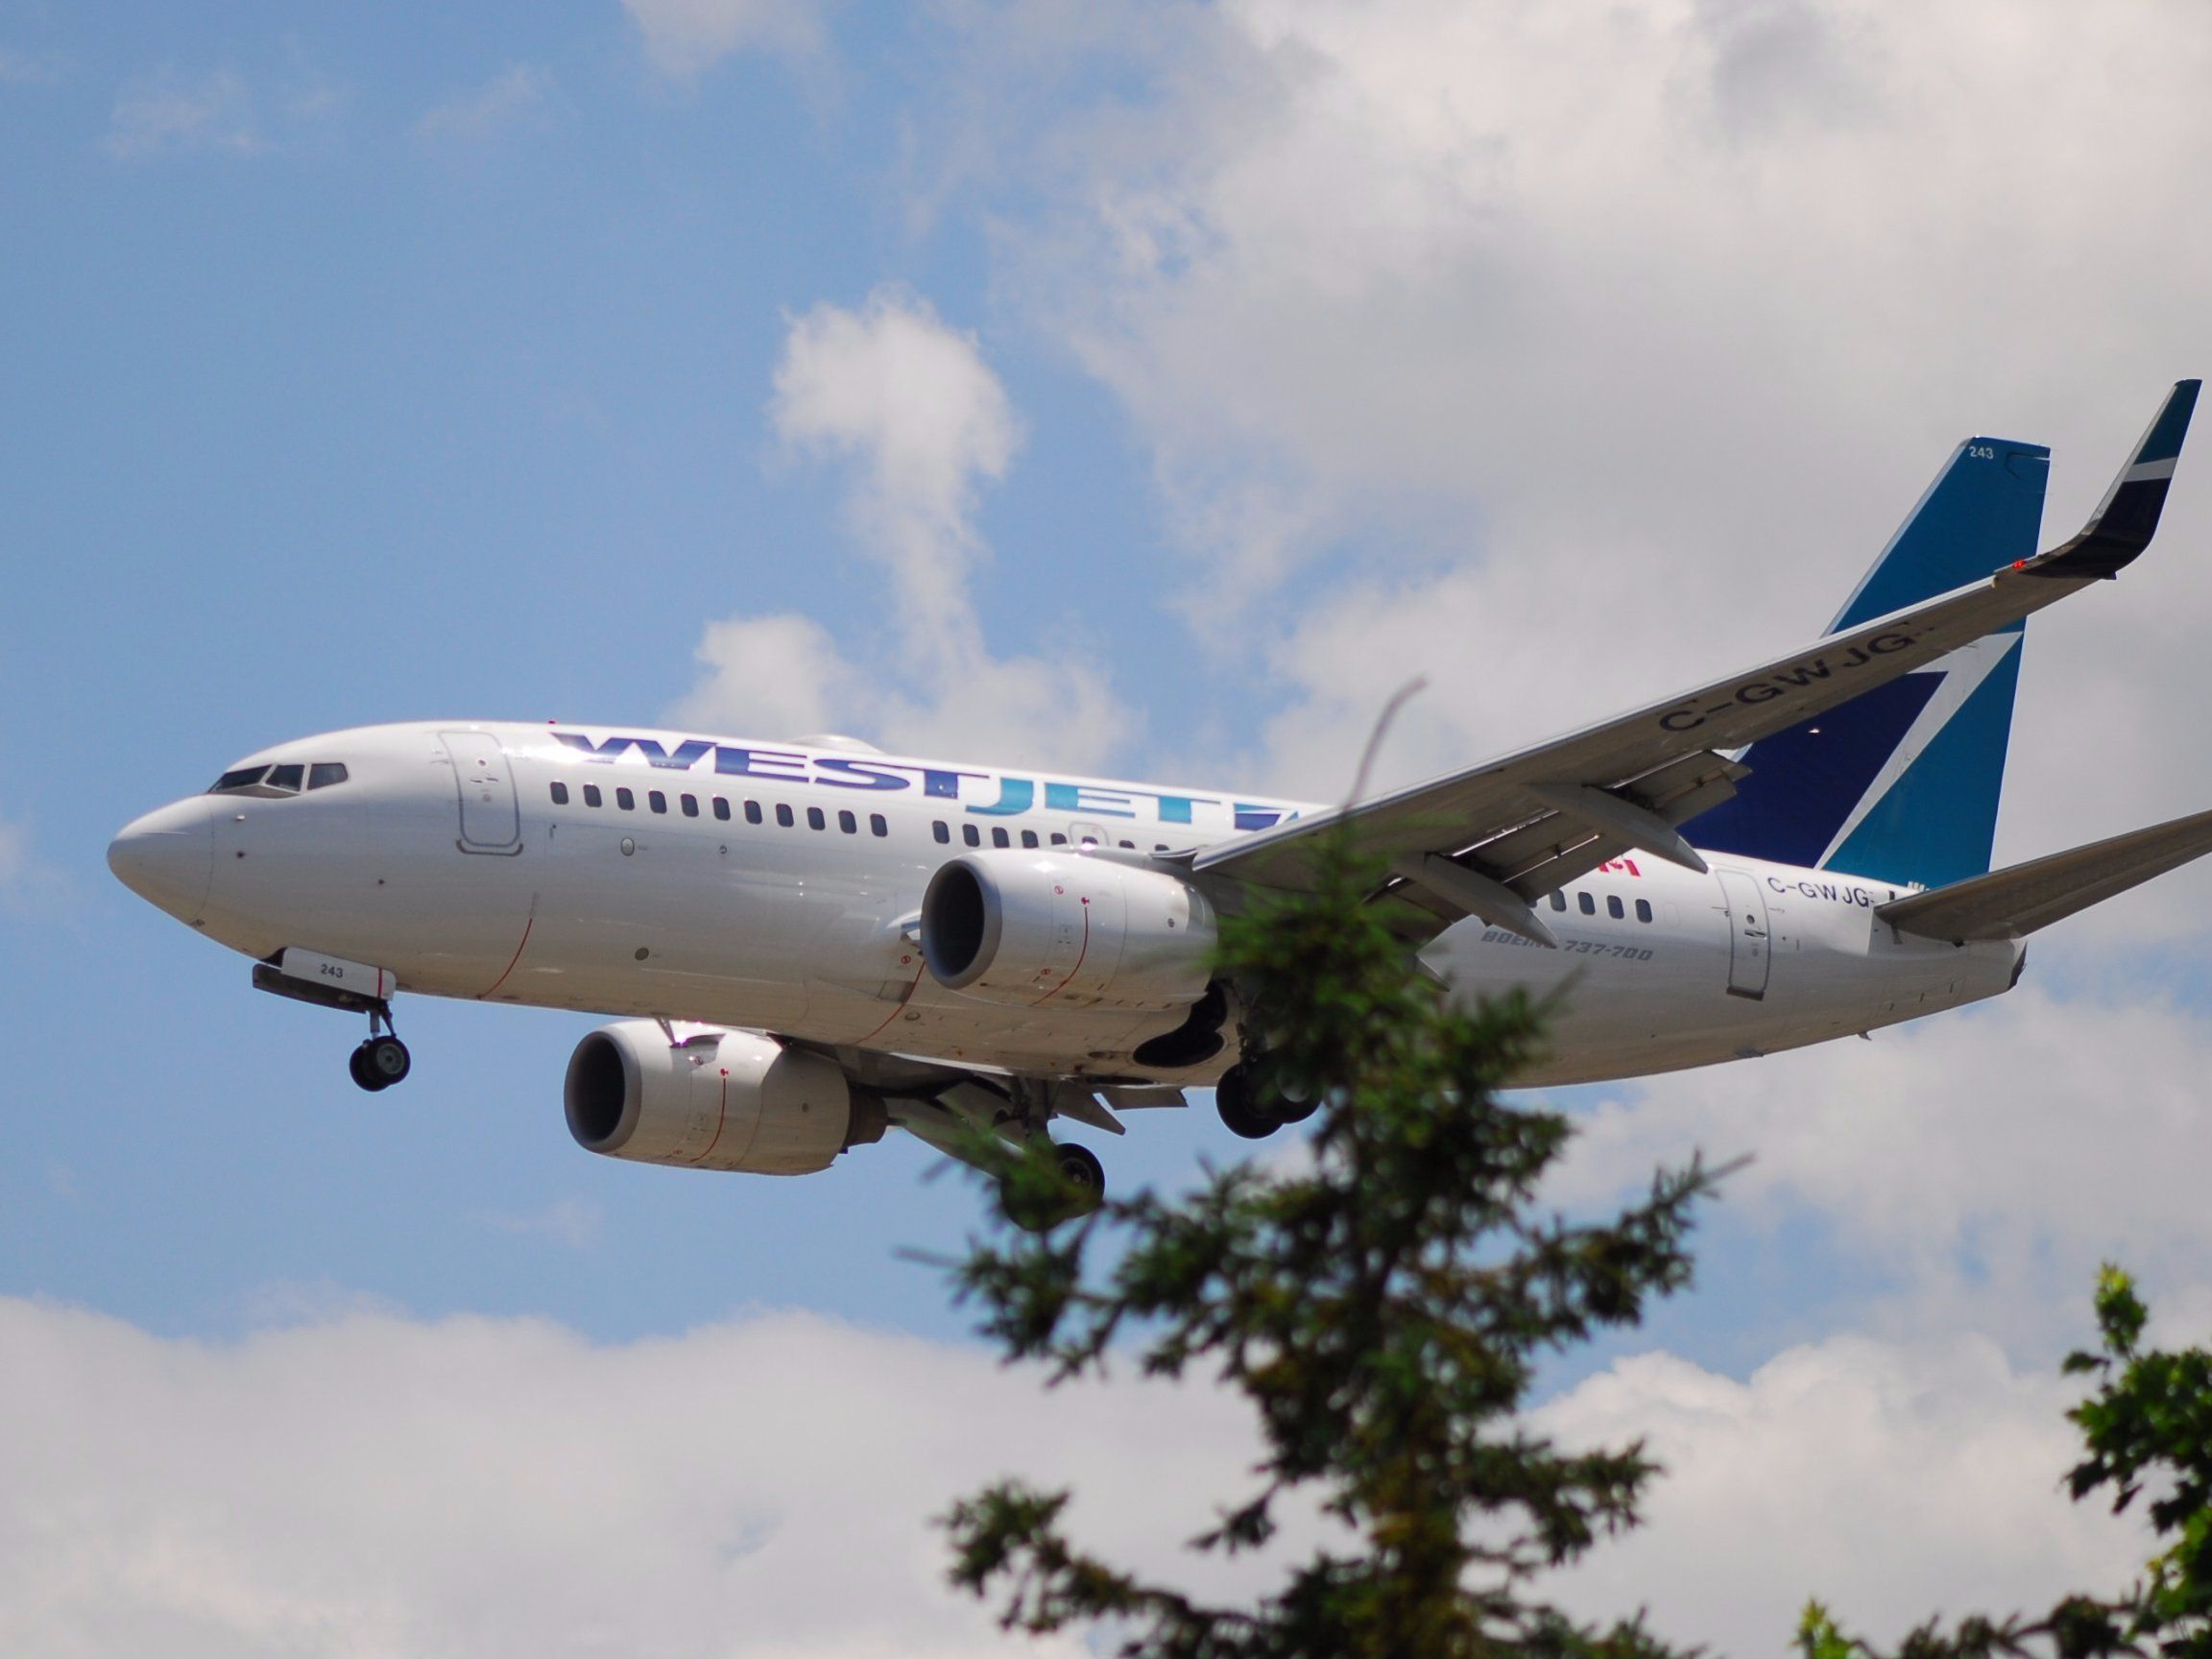 One of Canada's largest airlines is launching a lowcost